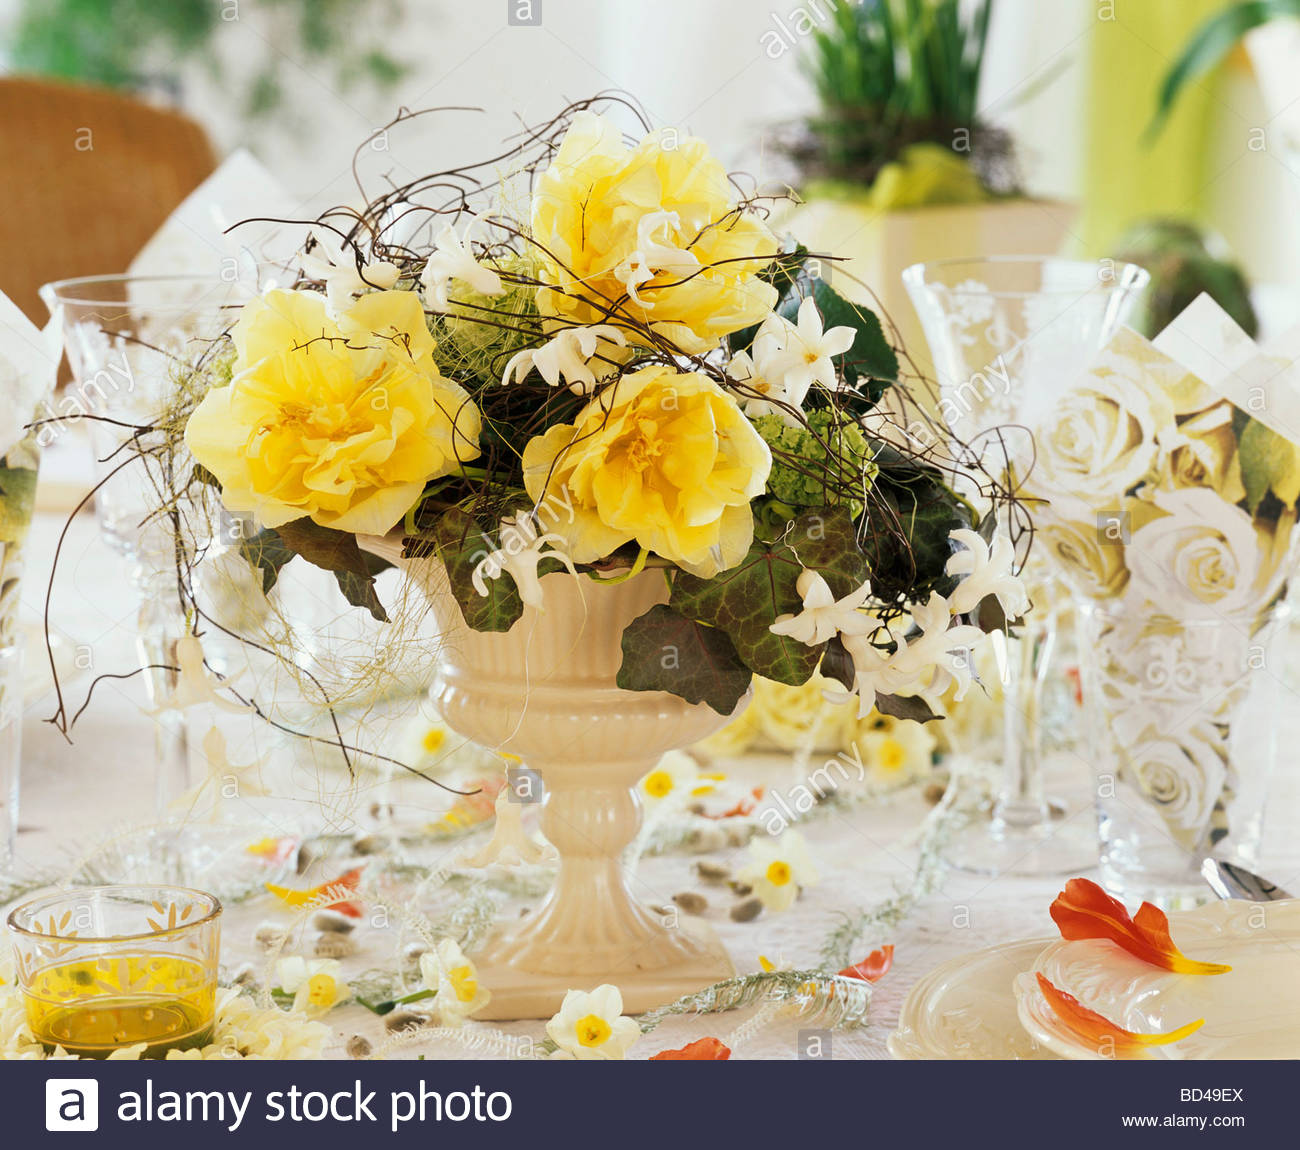 Table decoration with spring flowers stock photo 25296178 alamy table decoration with spring flowers mightylinksfo Choice Image